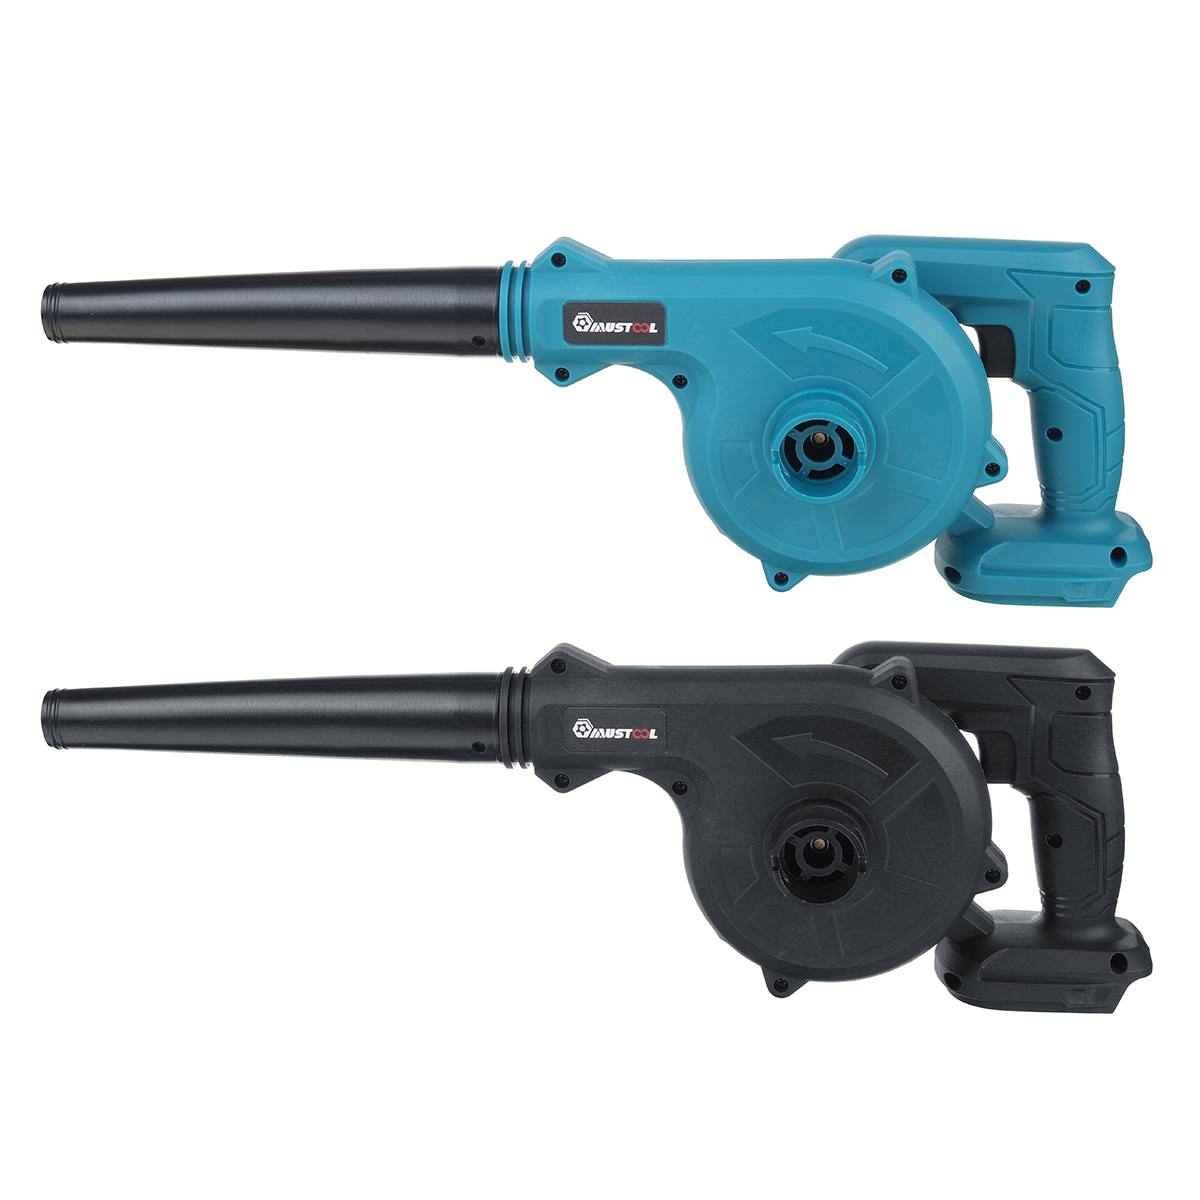 Electric 680W Battery Cleaner Tools Blower Collector Cordless Leaf Makita 18V Hand Air Power For Blower Computer Dust Vacuum